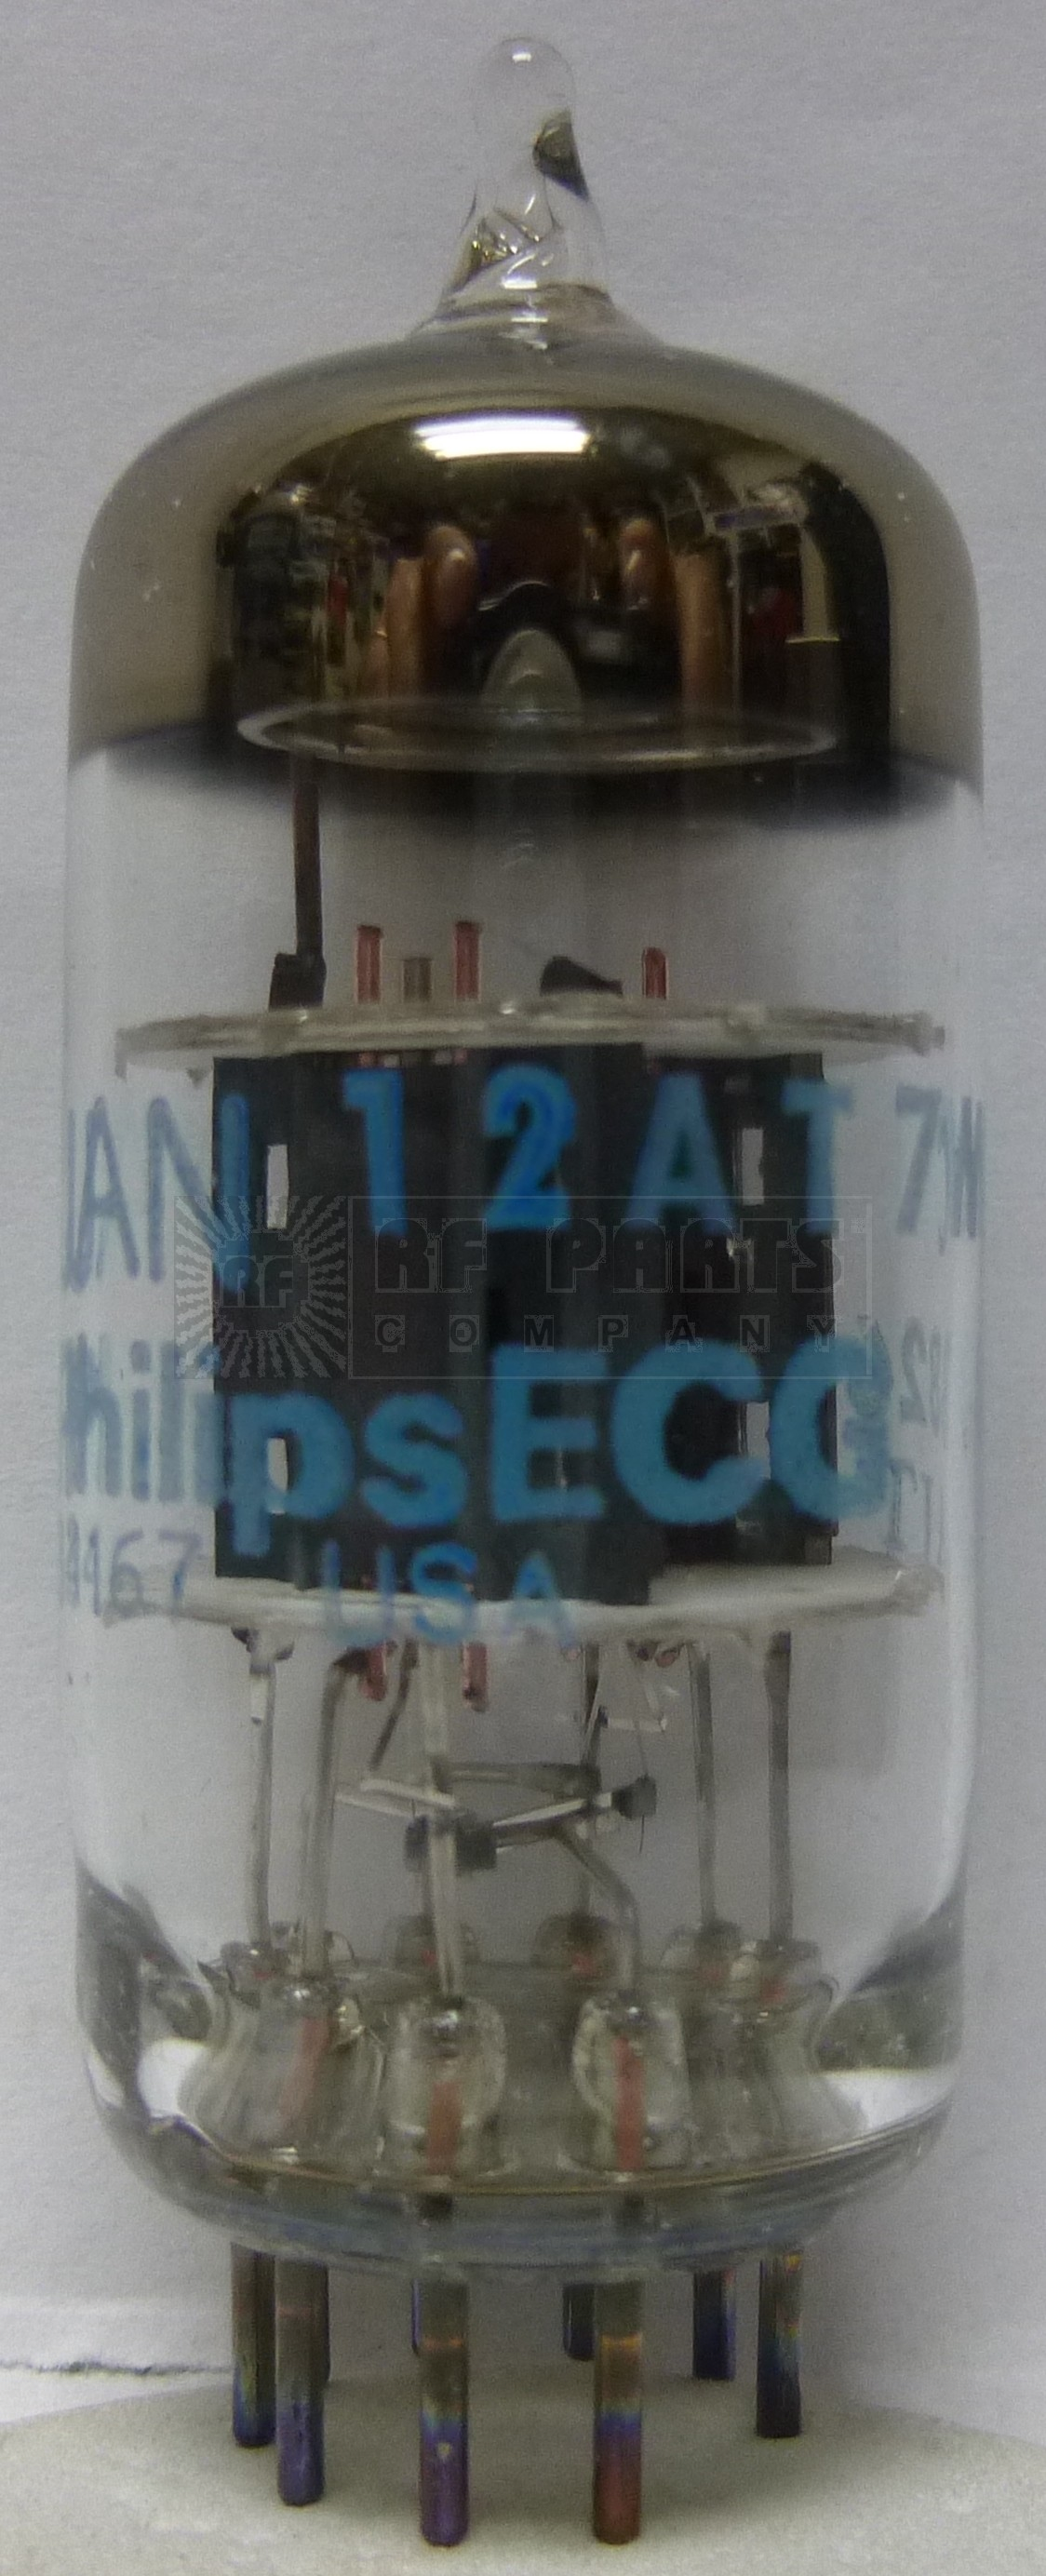 12AT7WC-ECG  Tube, High Frequency Twin Triode, JAN/ECG Philips  5960-00-179-4446